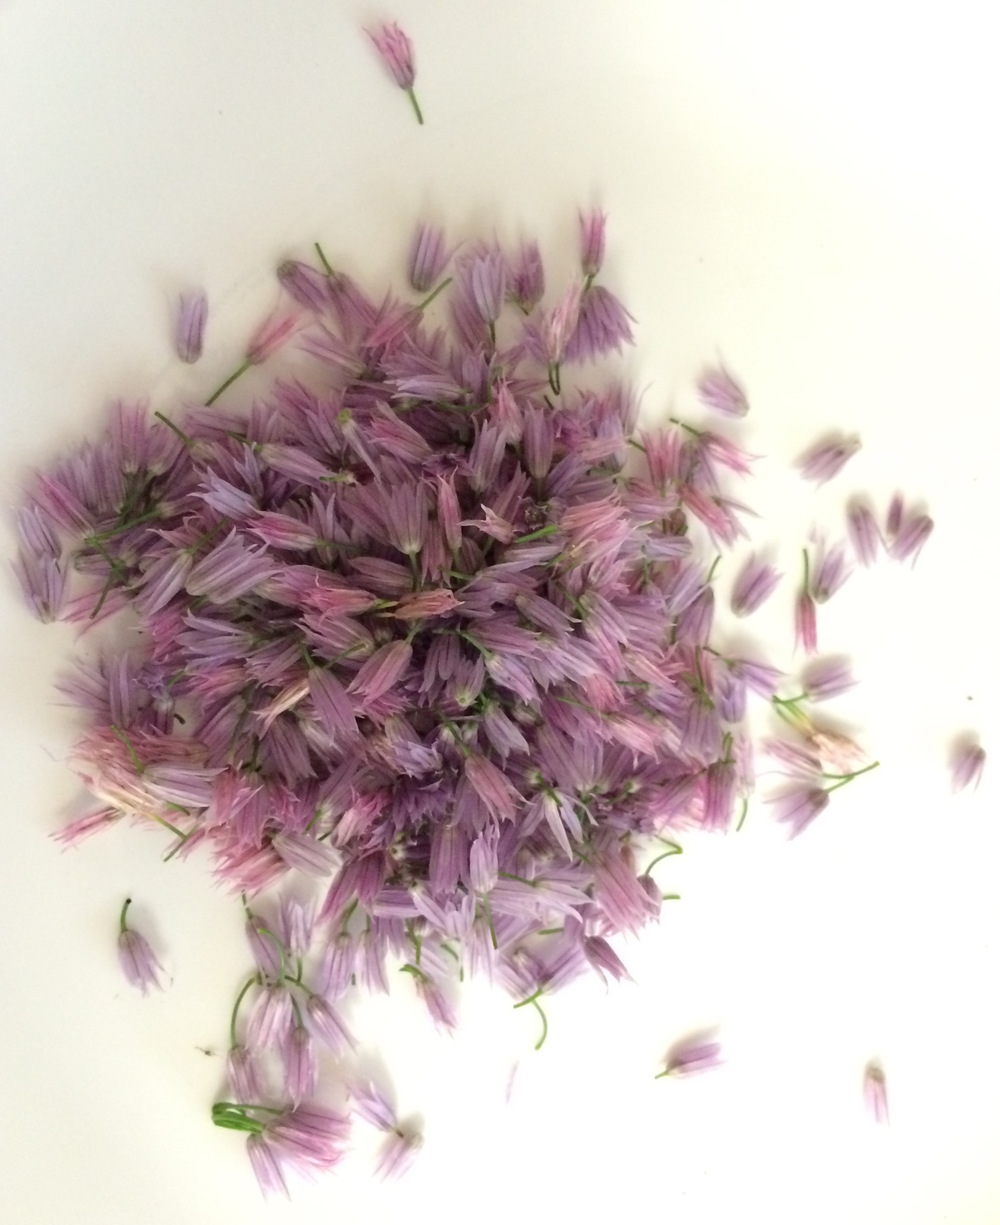 Chive Blossoms (separated)